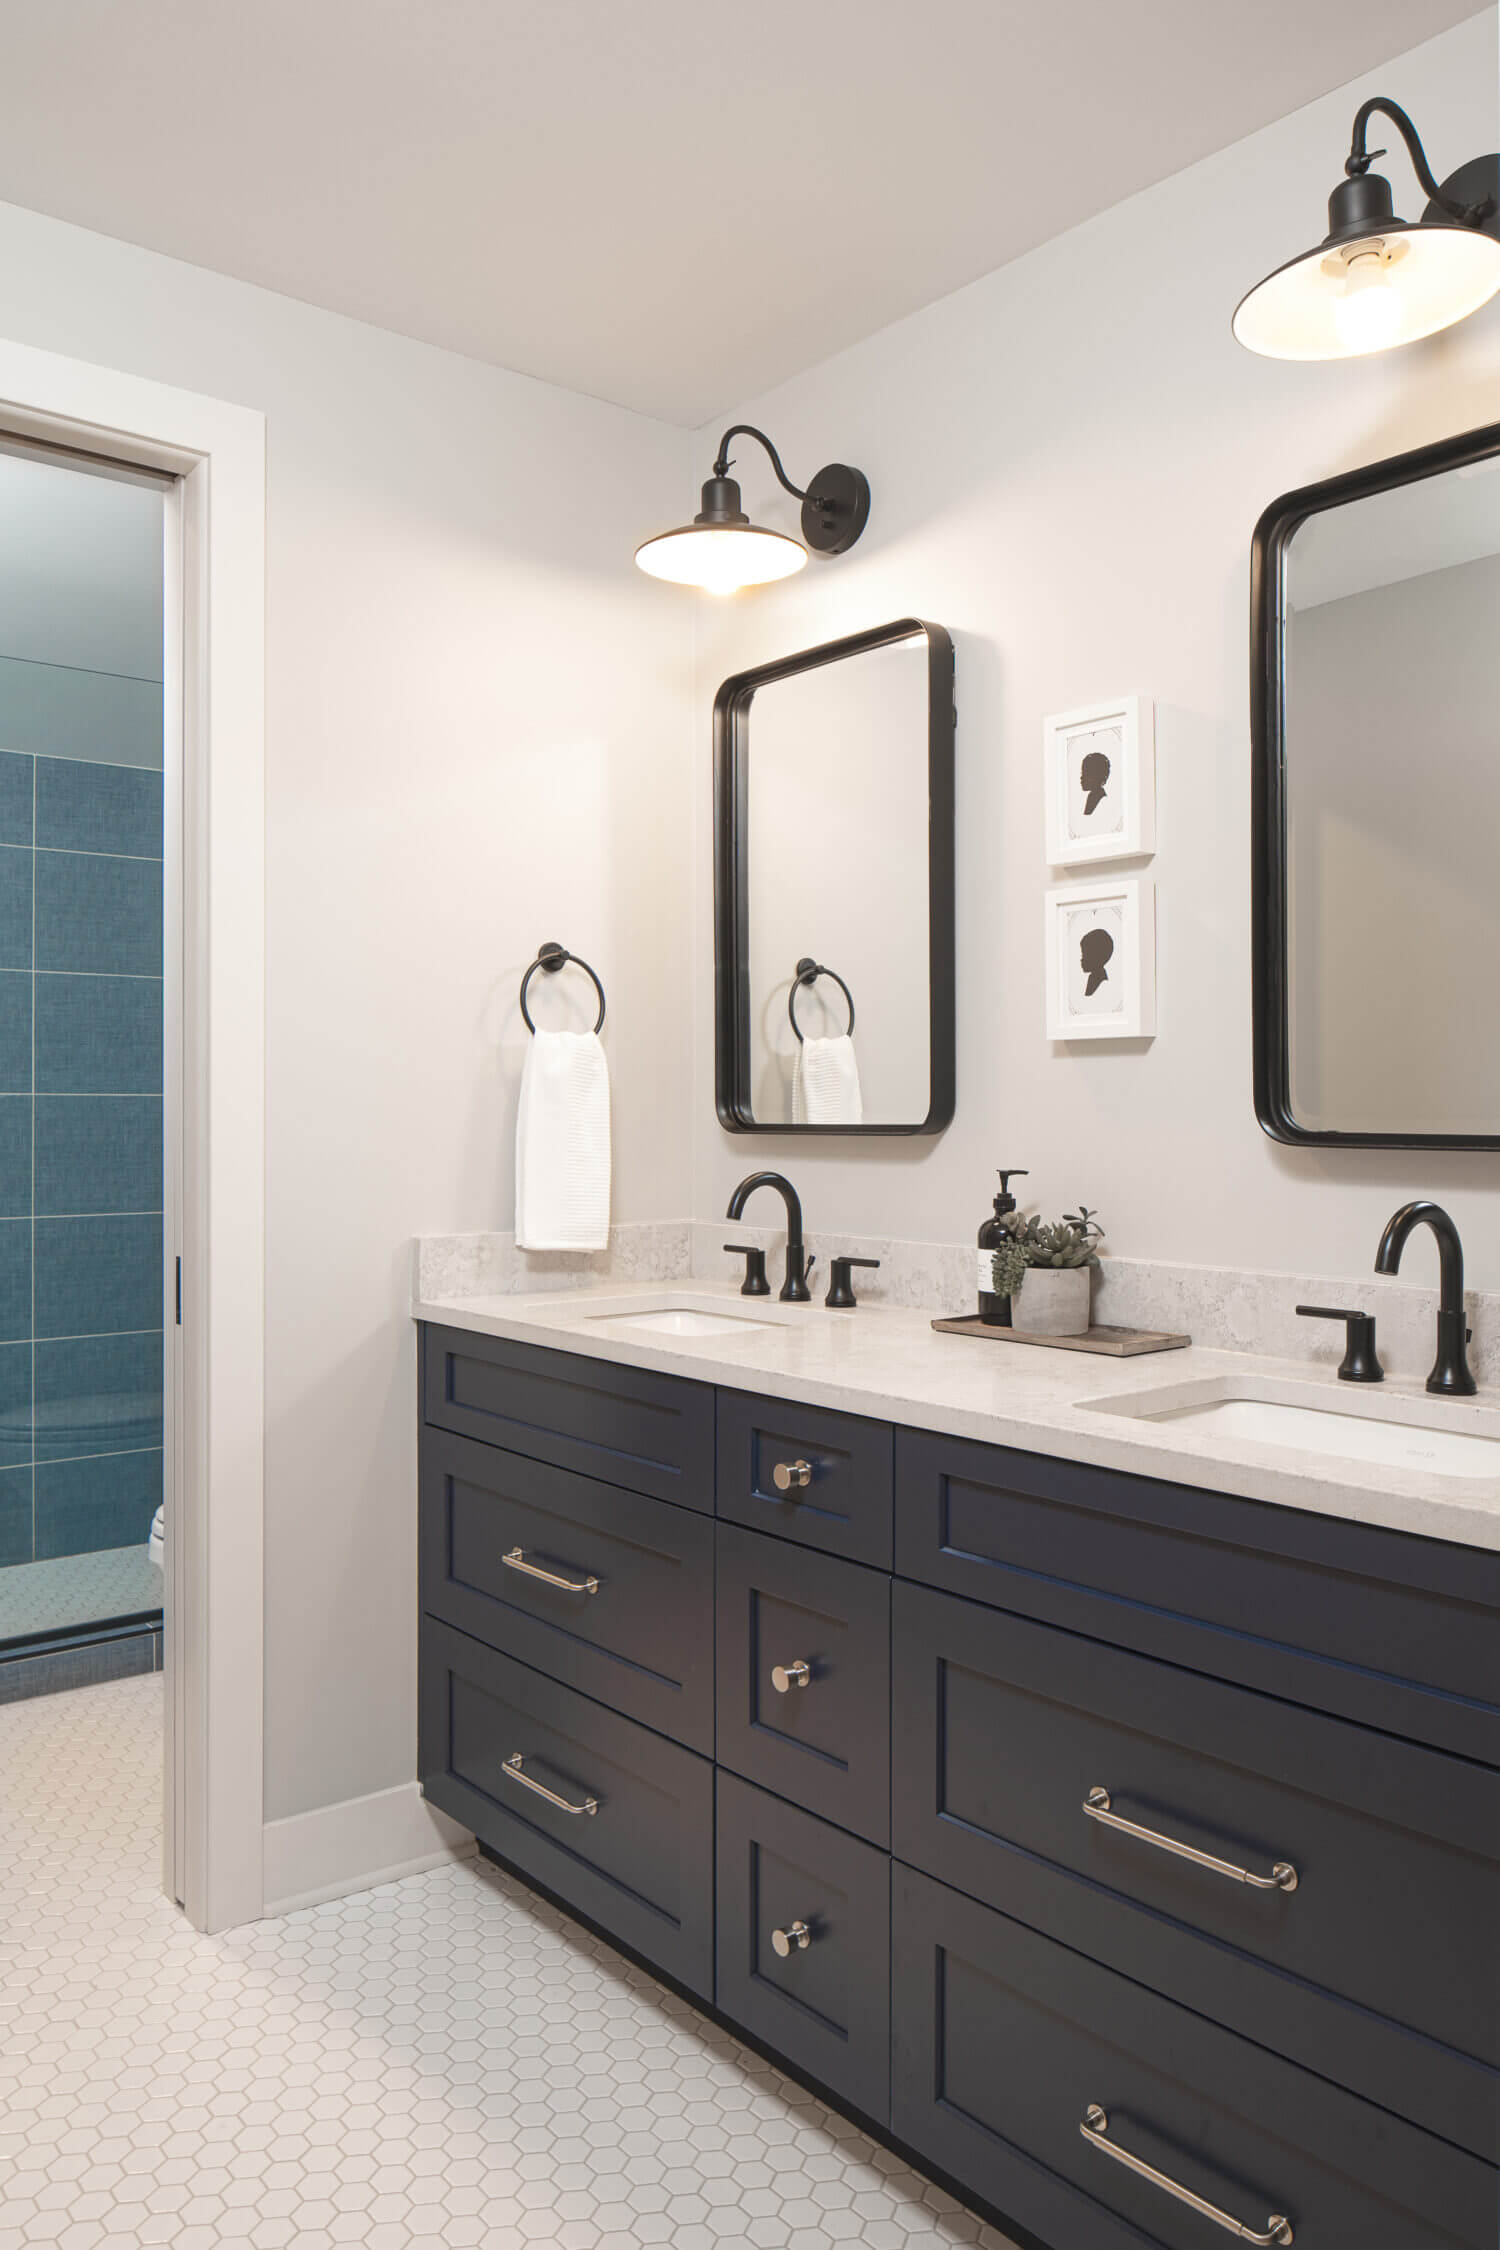 Cyber Space Master Bathroom Vanity Dura Supreme Cabinetry